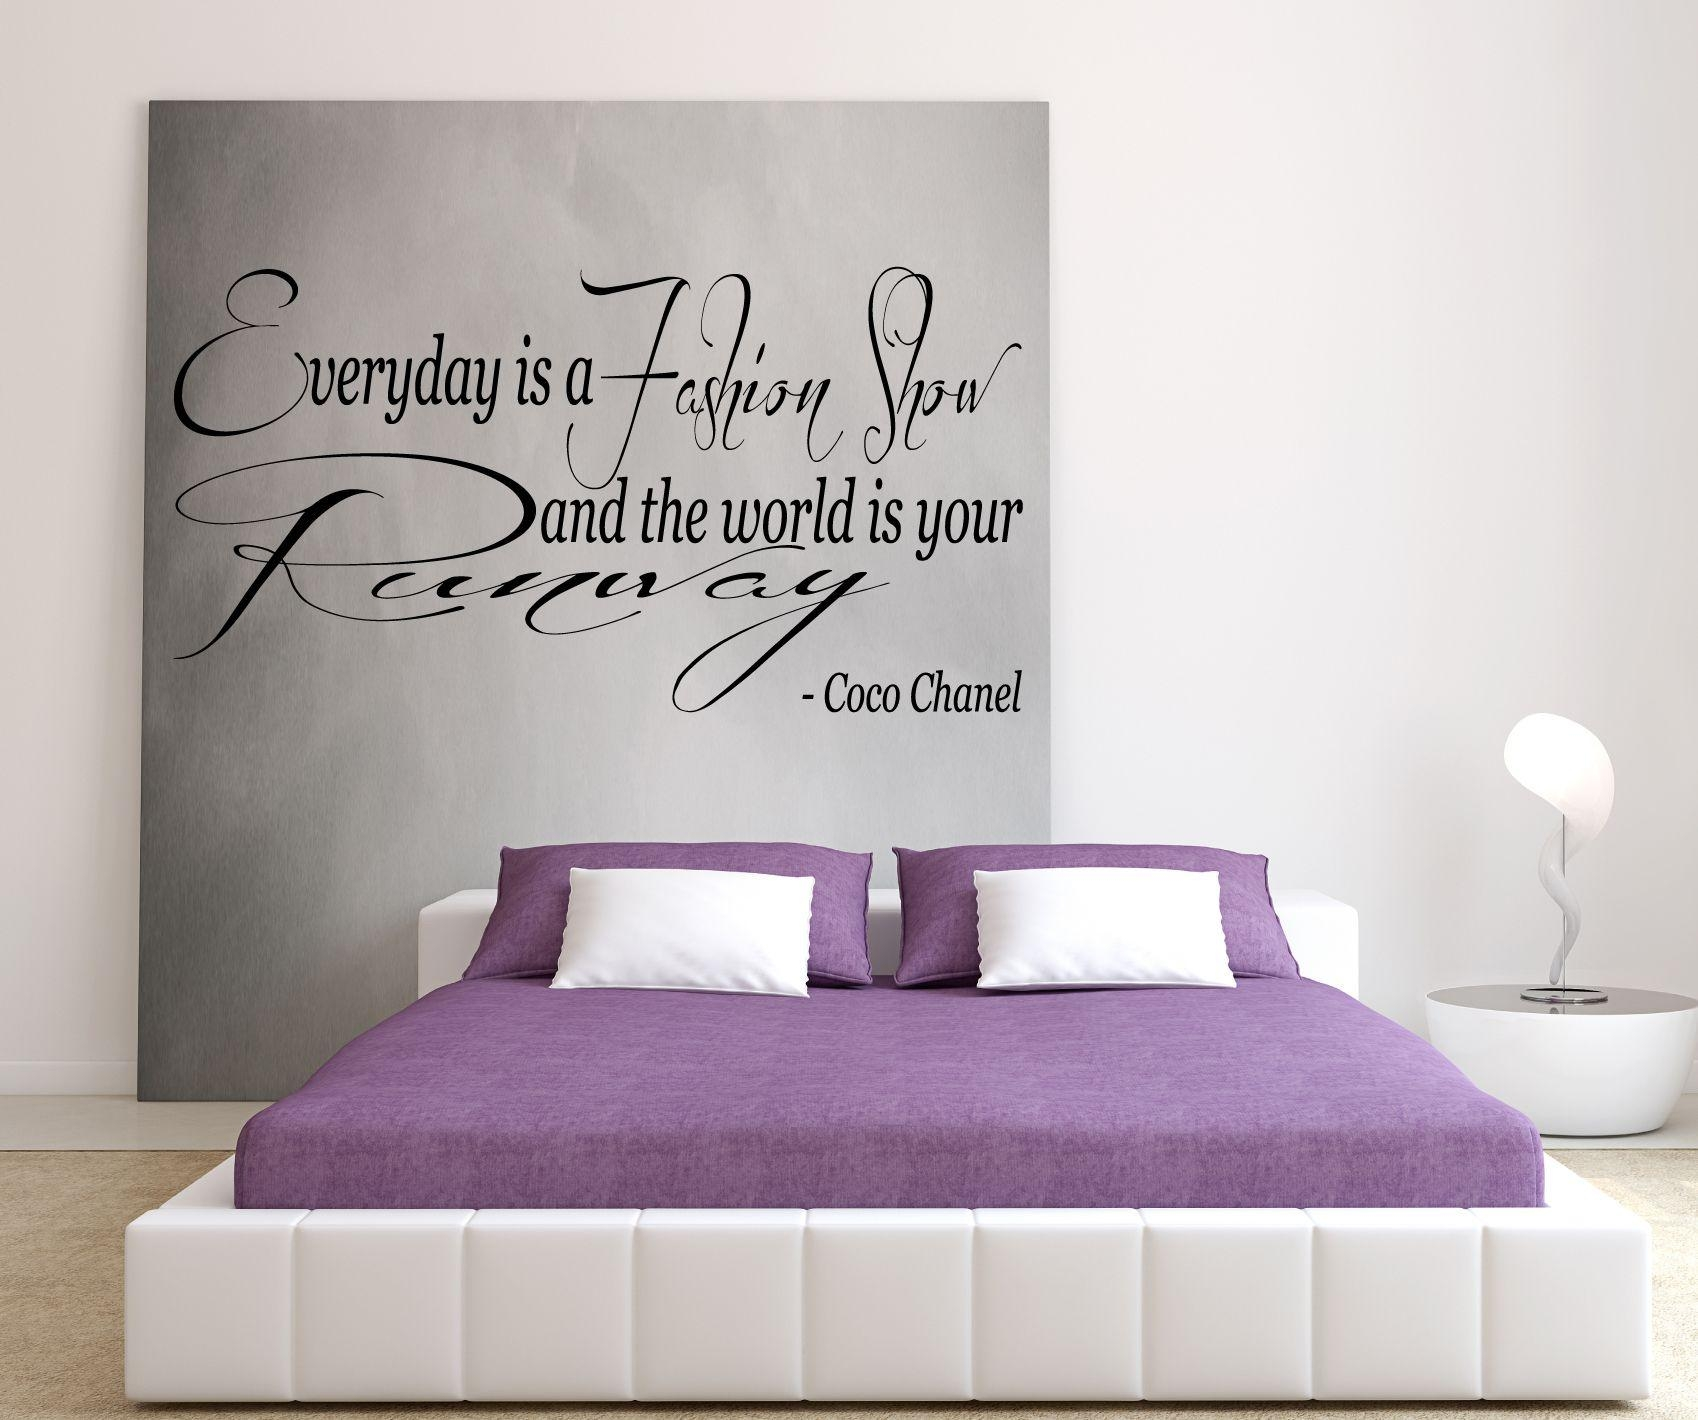 Coco Chanel – Everyday Is A Fashion Show And The World Is Your Pertaining To Coco Chanel Wall Stickers (View 6 of 20)